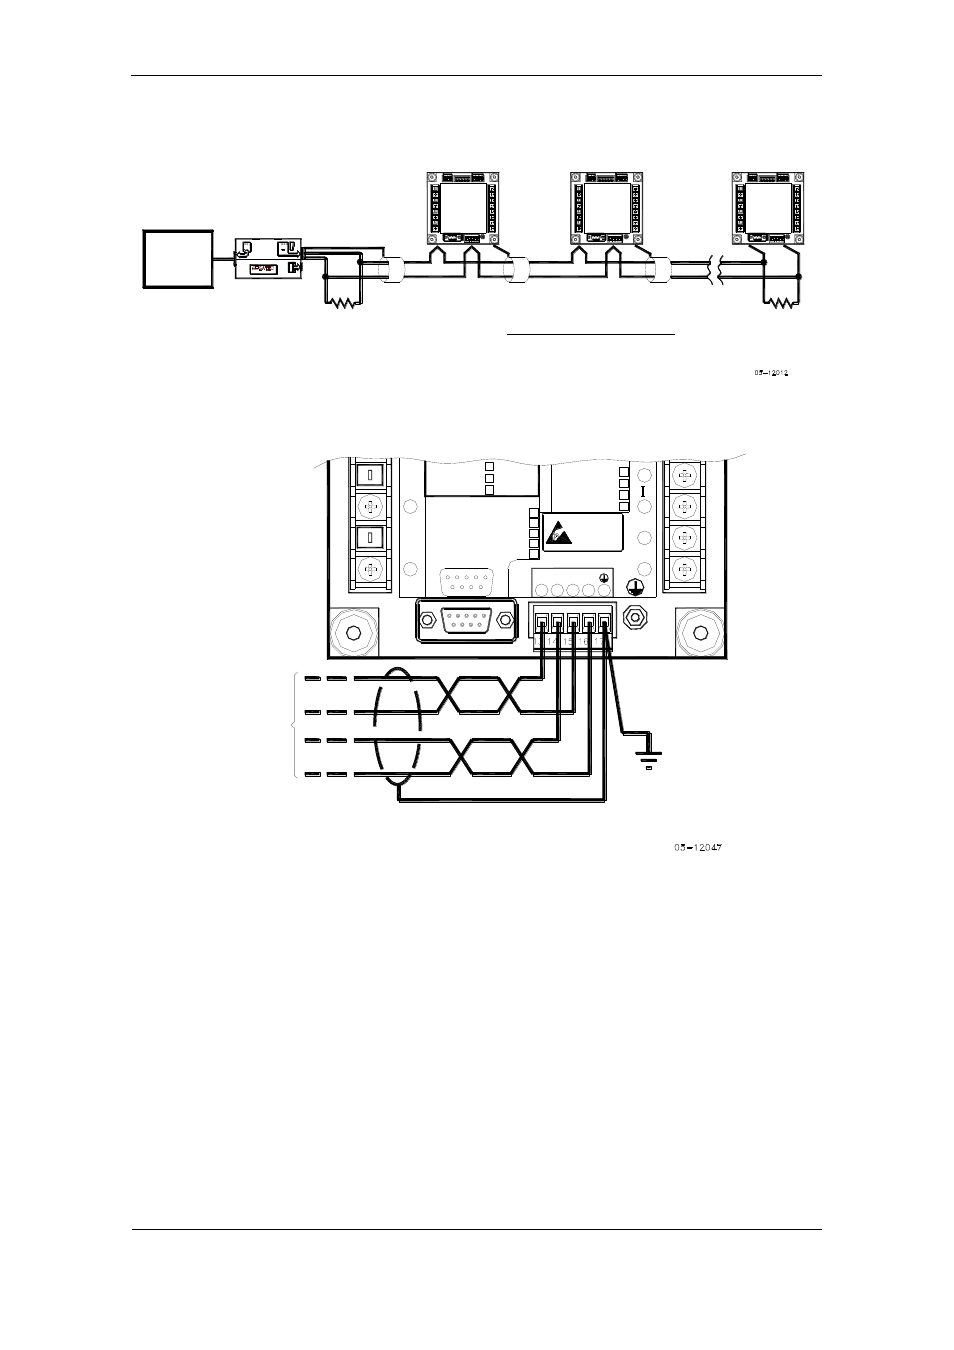 Rs 485 Multi Drop Connection Rx Tx Satec Pm175 Manual User 2wire Diagram Page 31 168